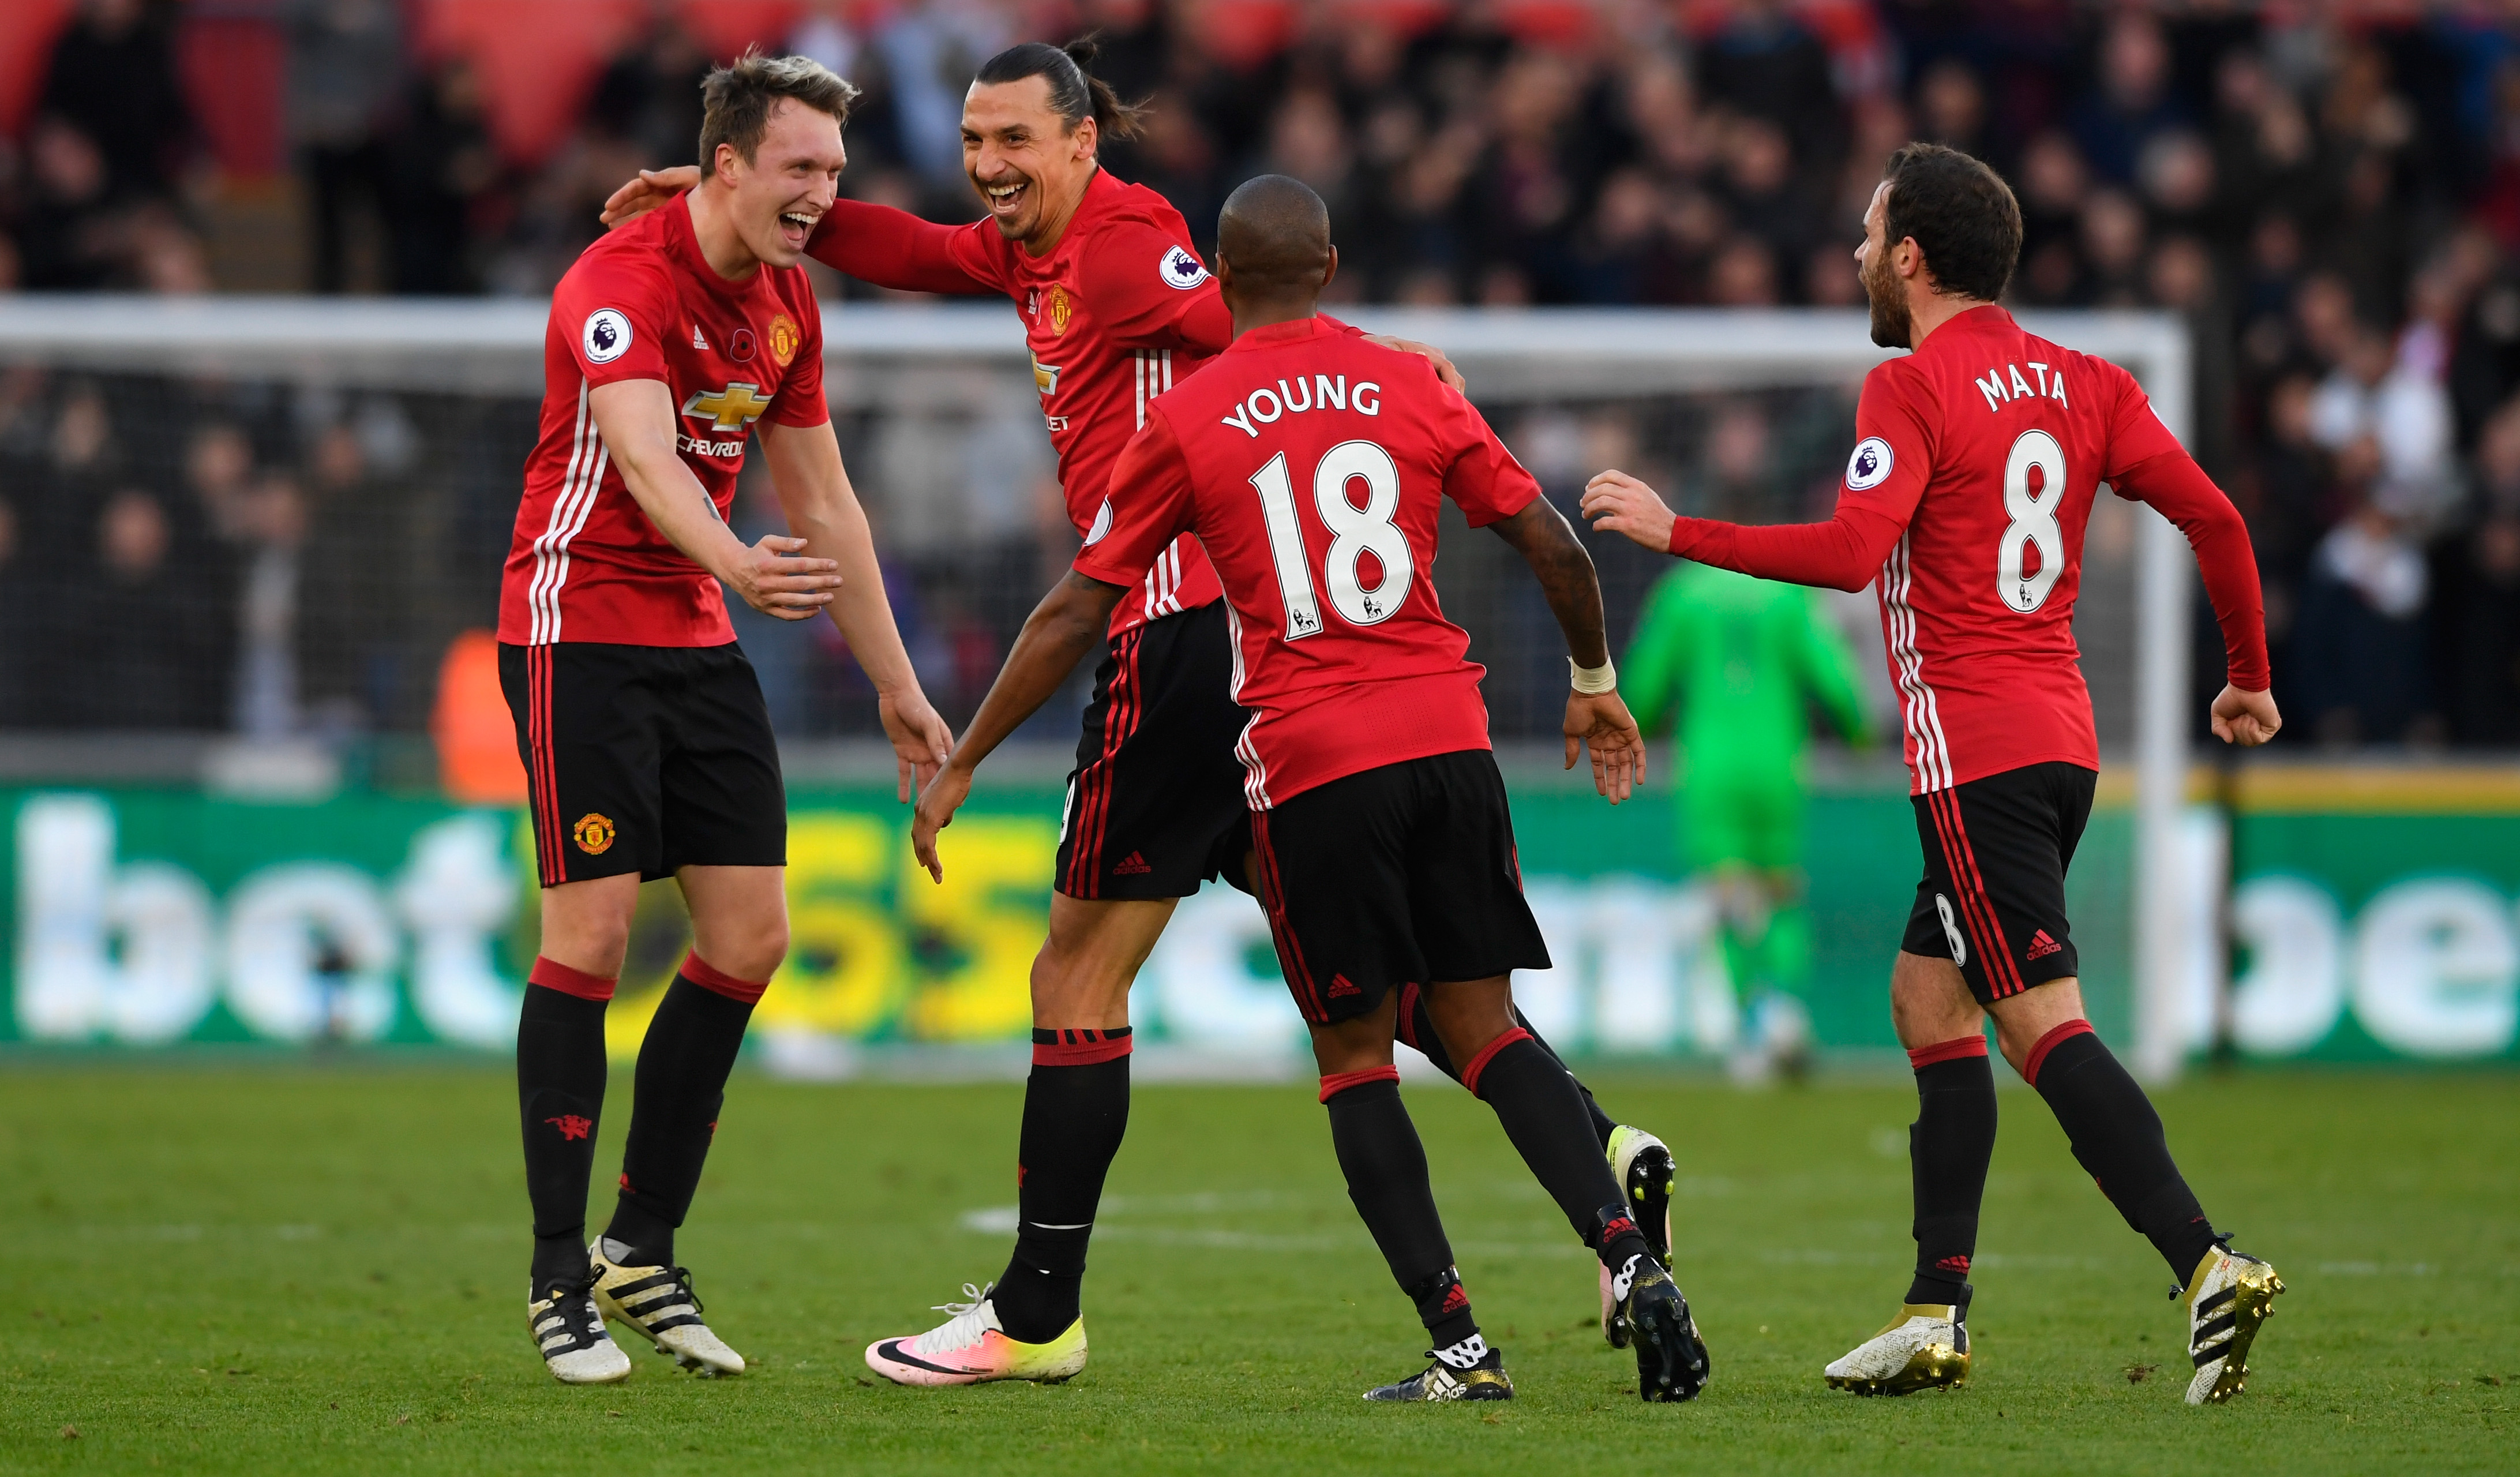 Manchester United retain sixth position